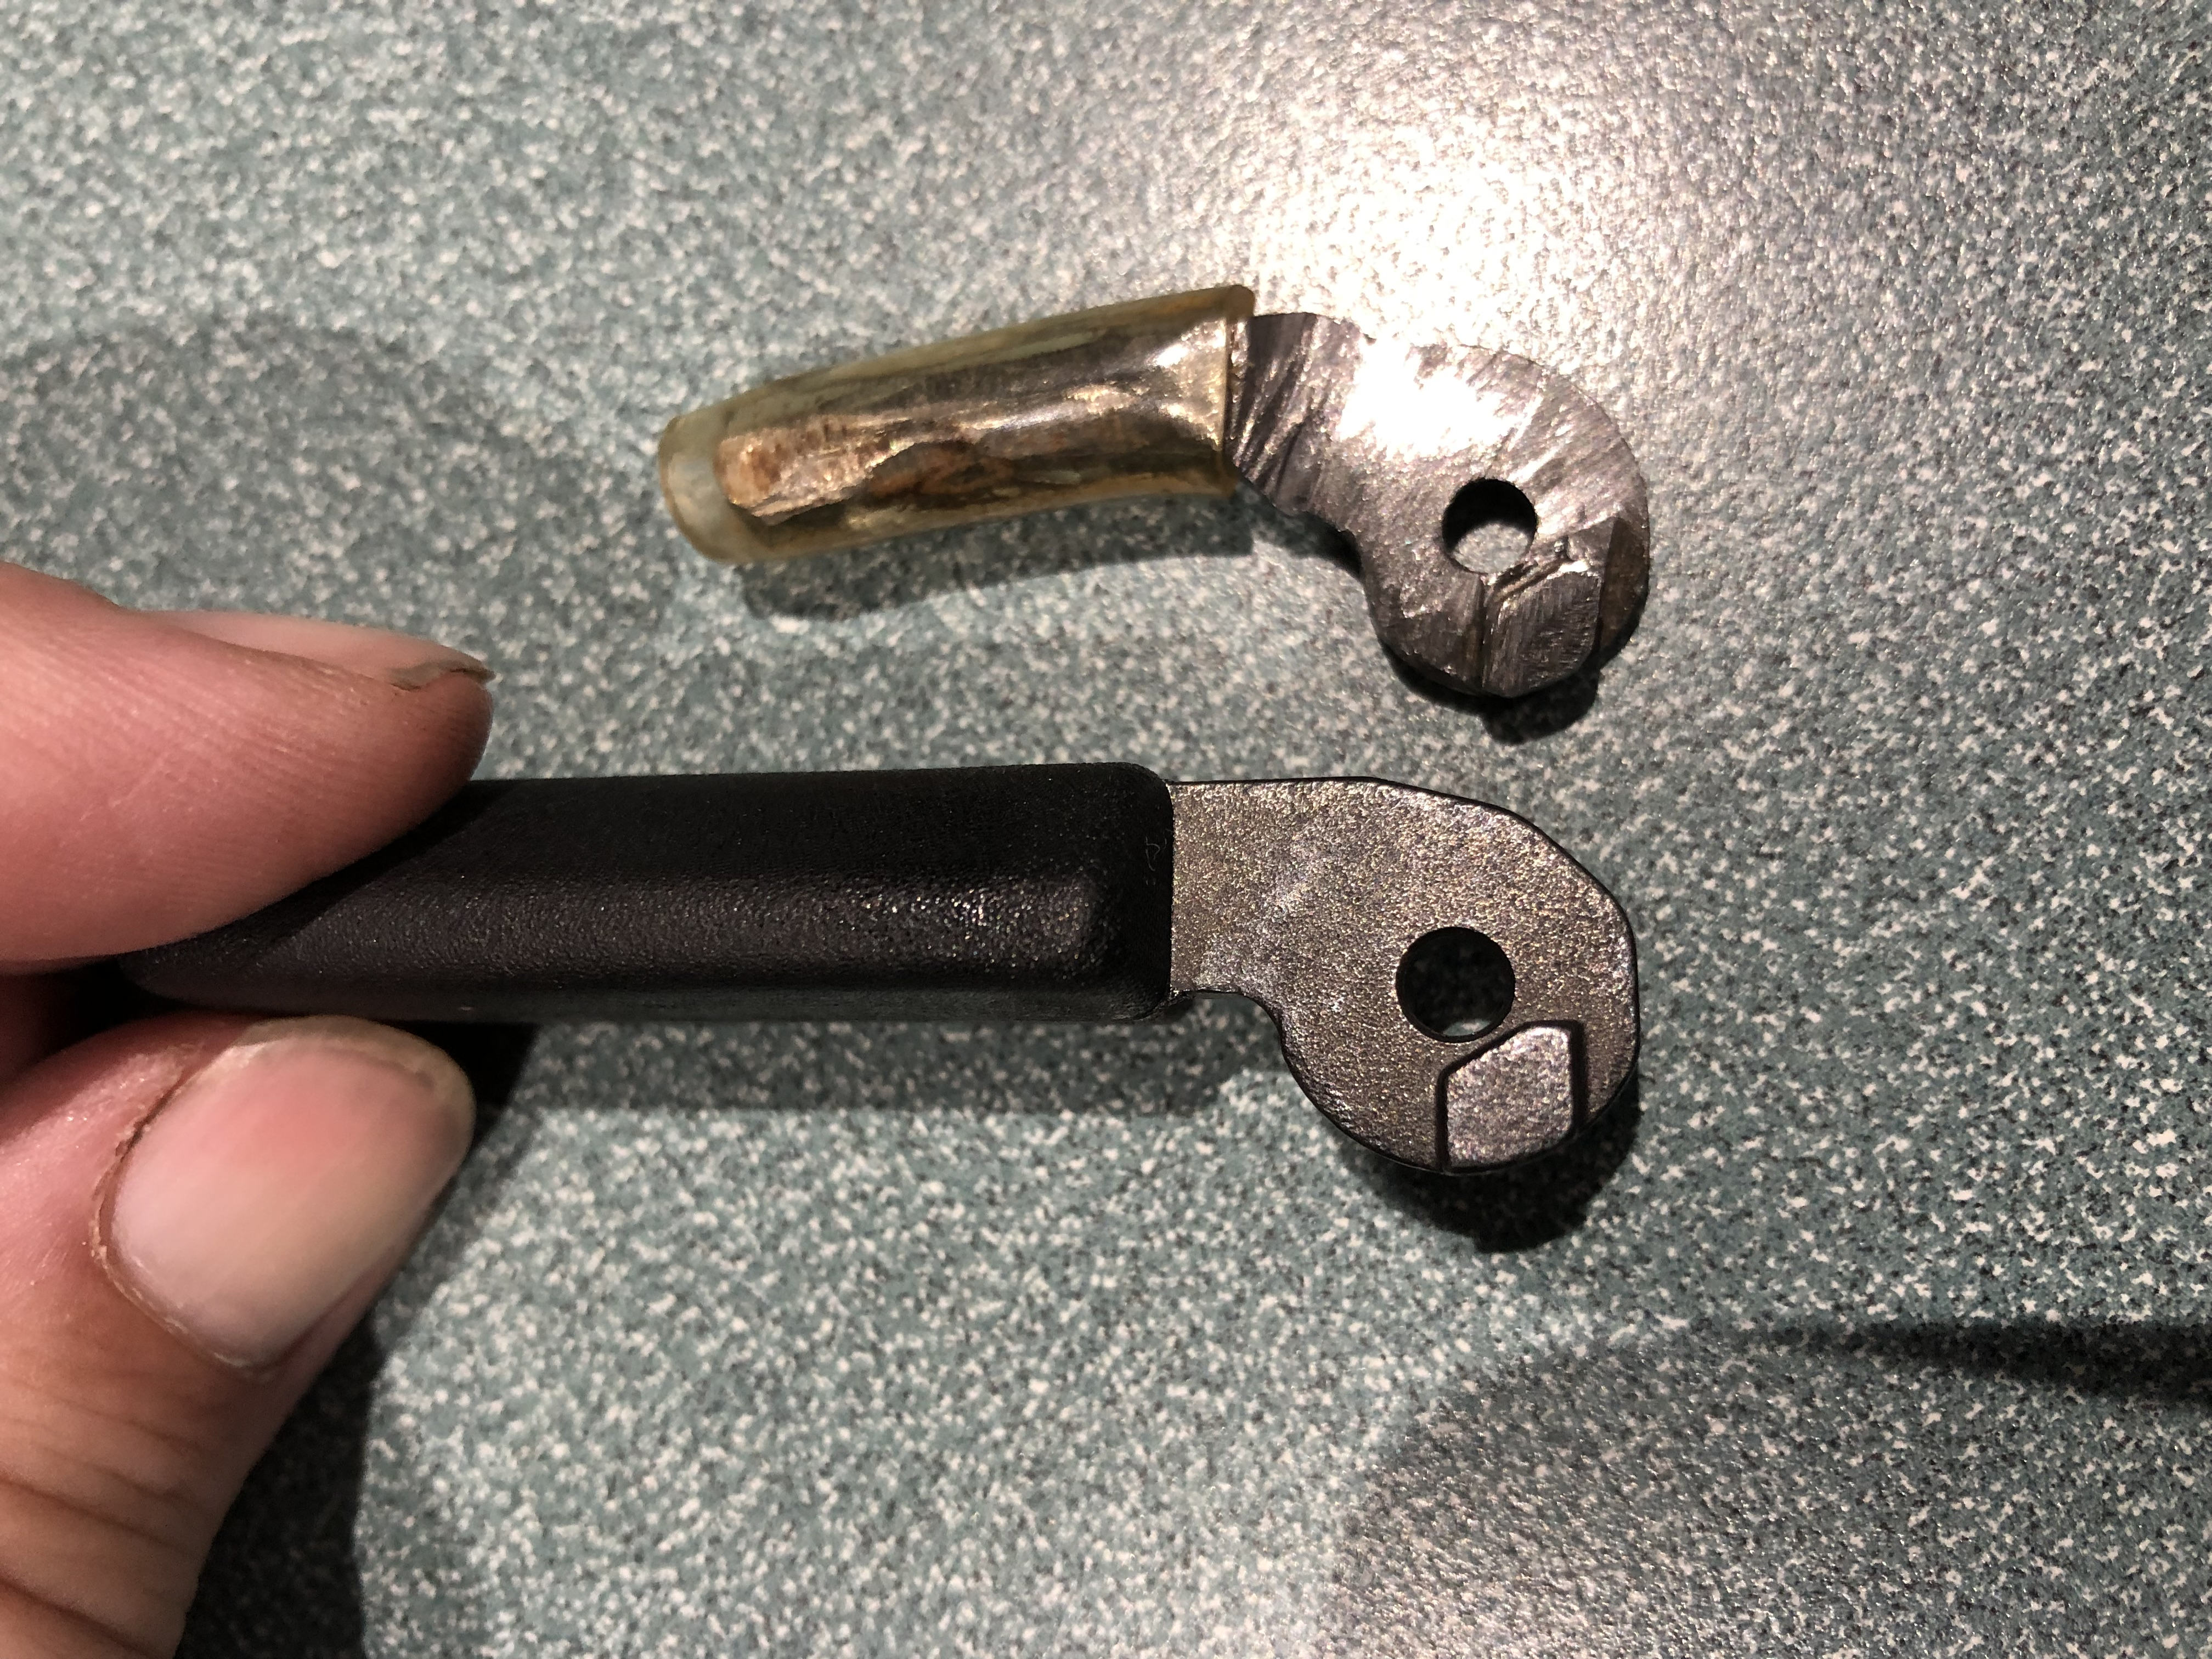 HK 630, 770, 940 - Cocking Lever (Charging Handle) Removal and Replacement-16.jpg